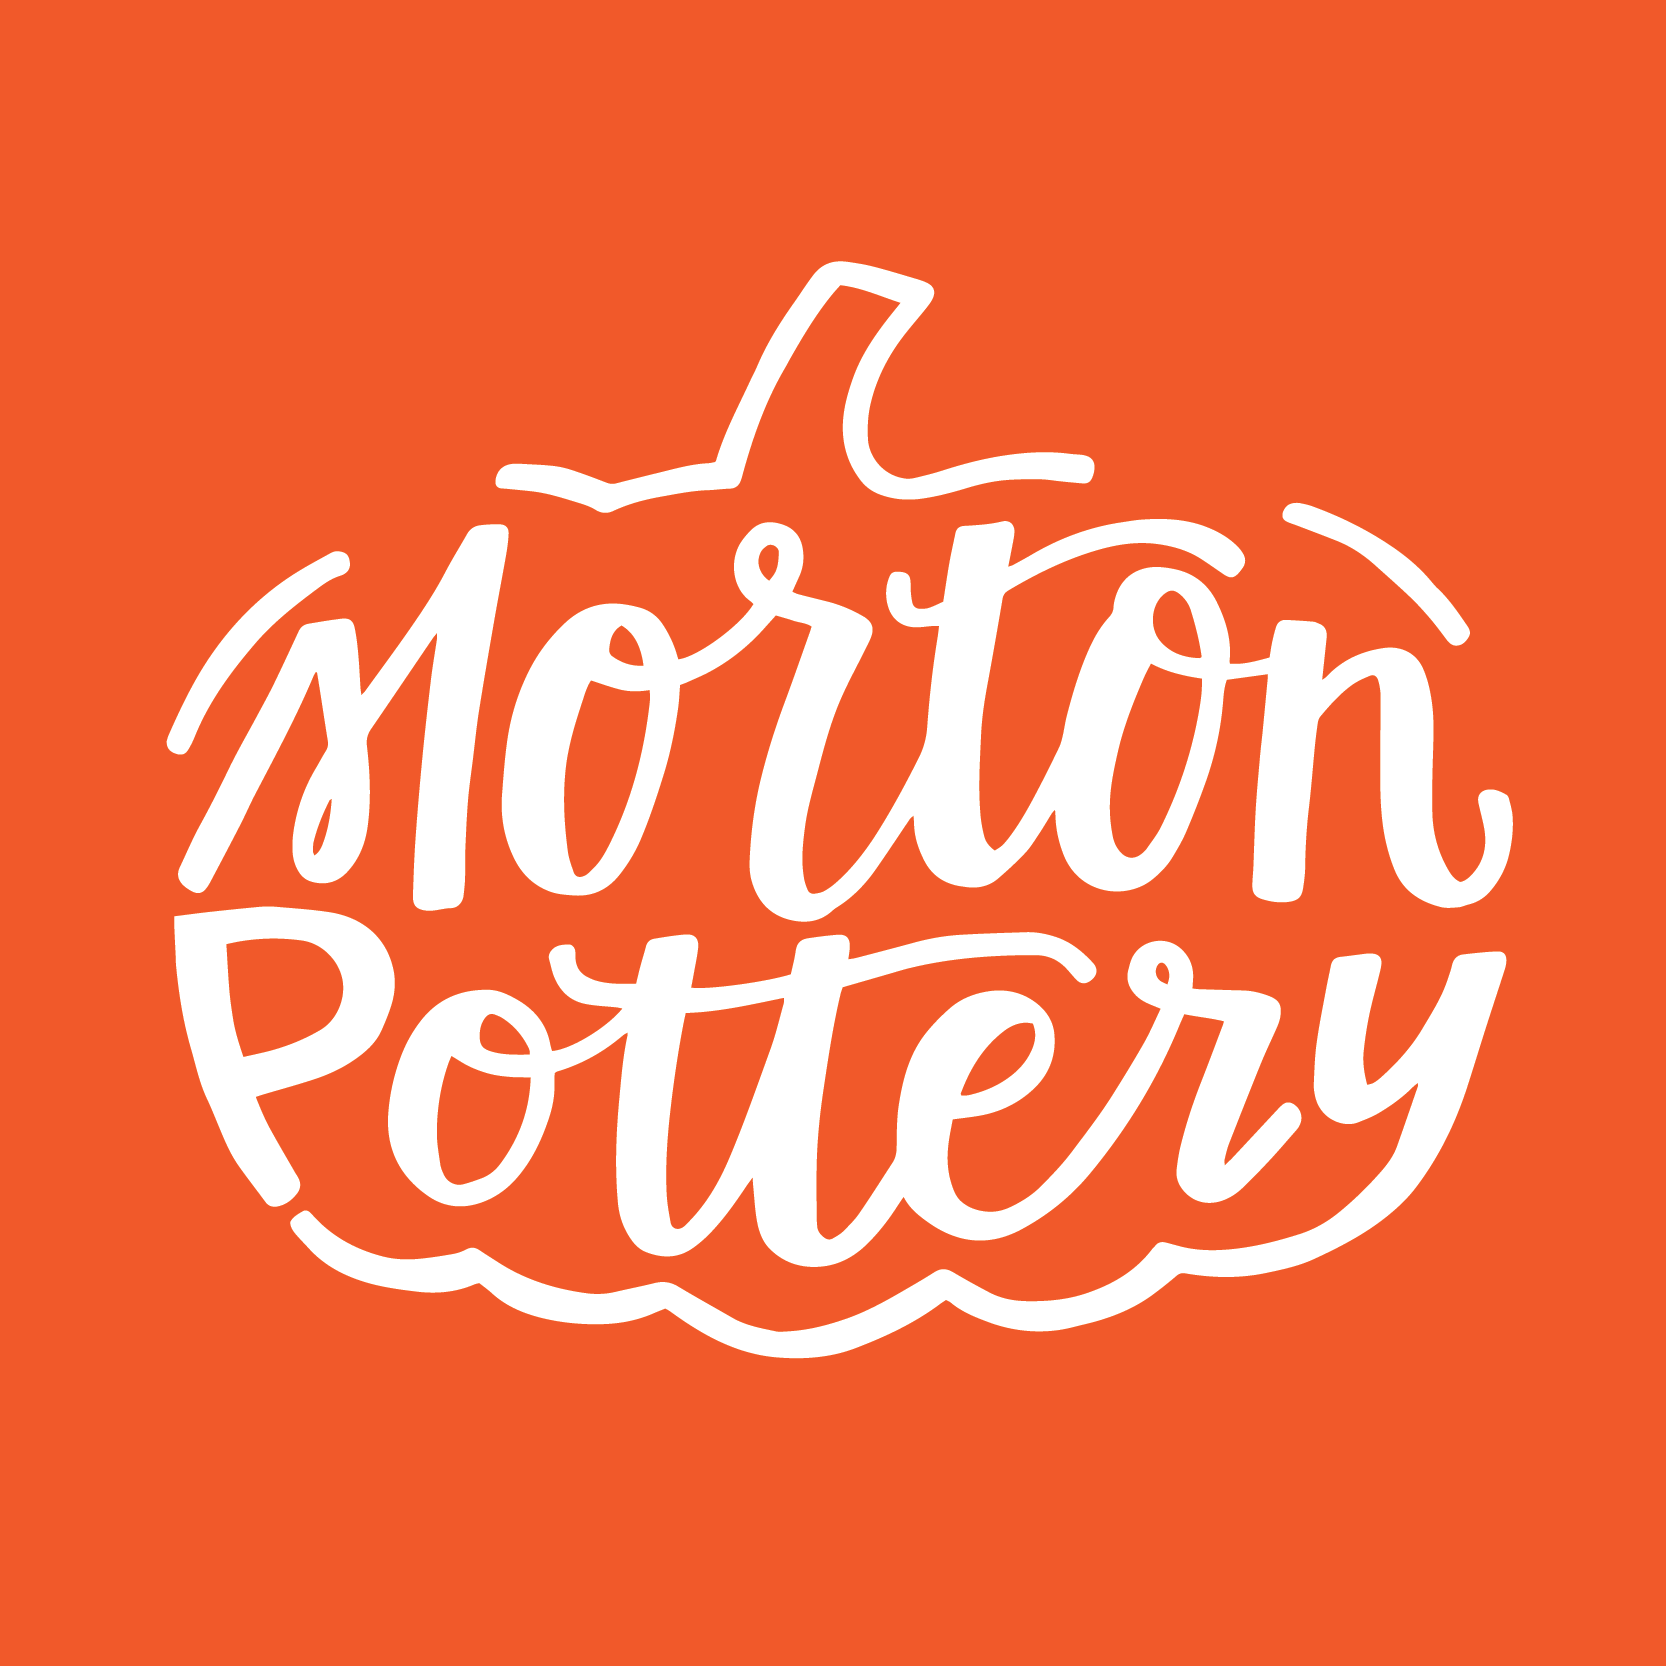 Morton Pottery Logo Design